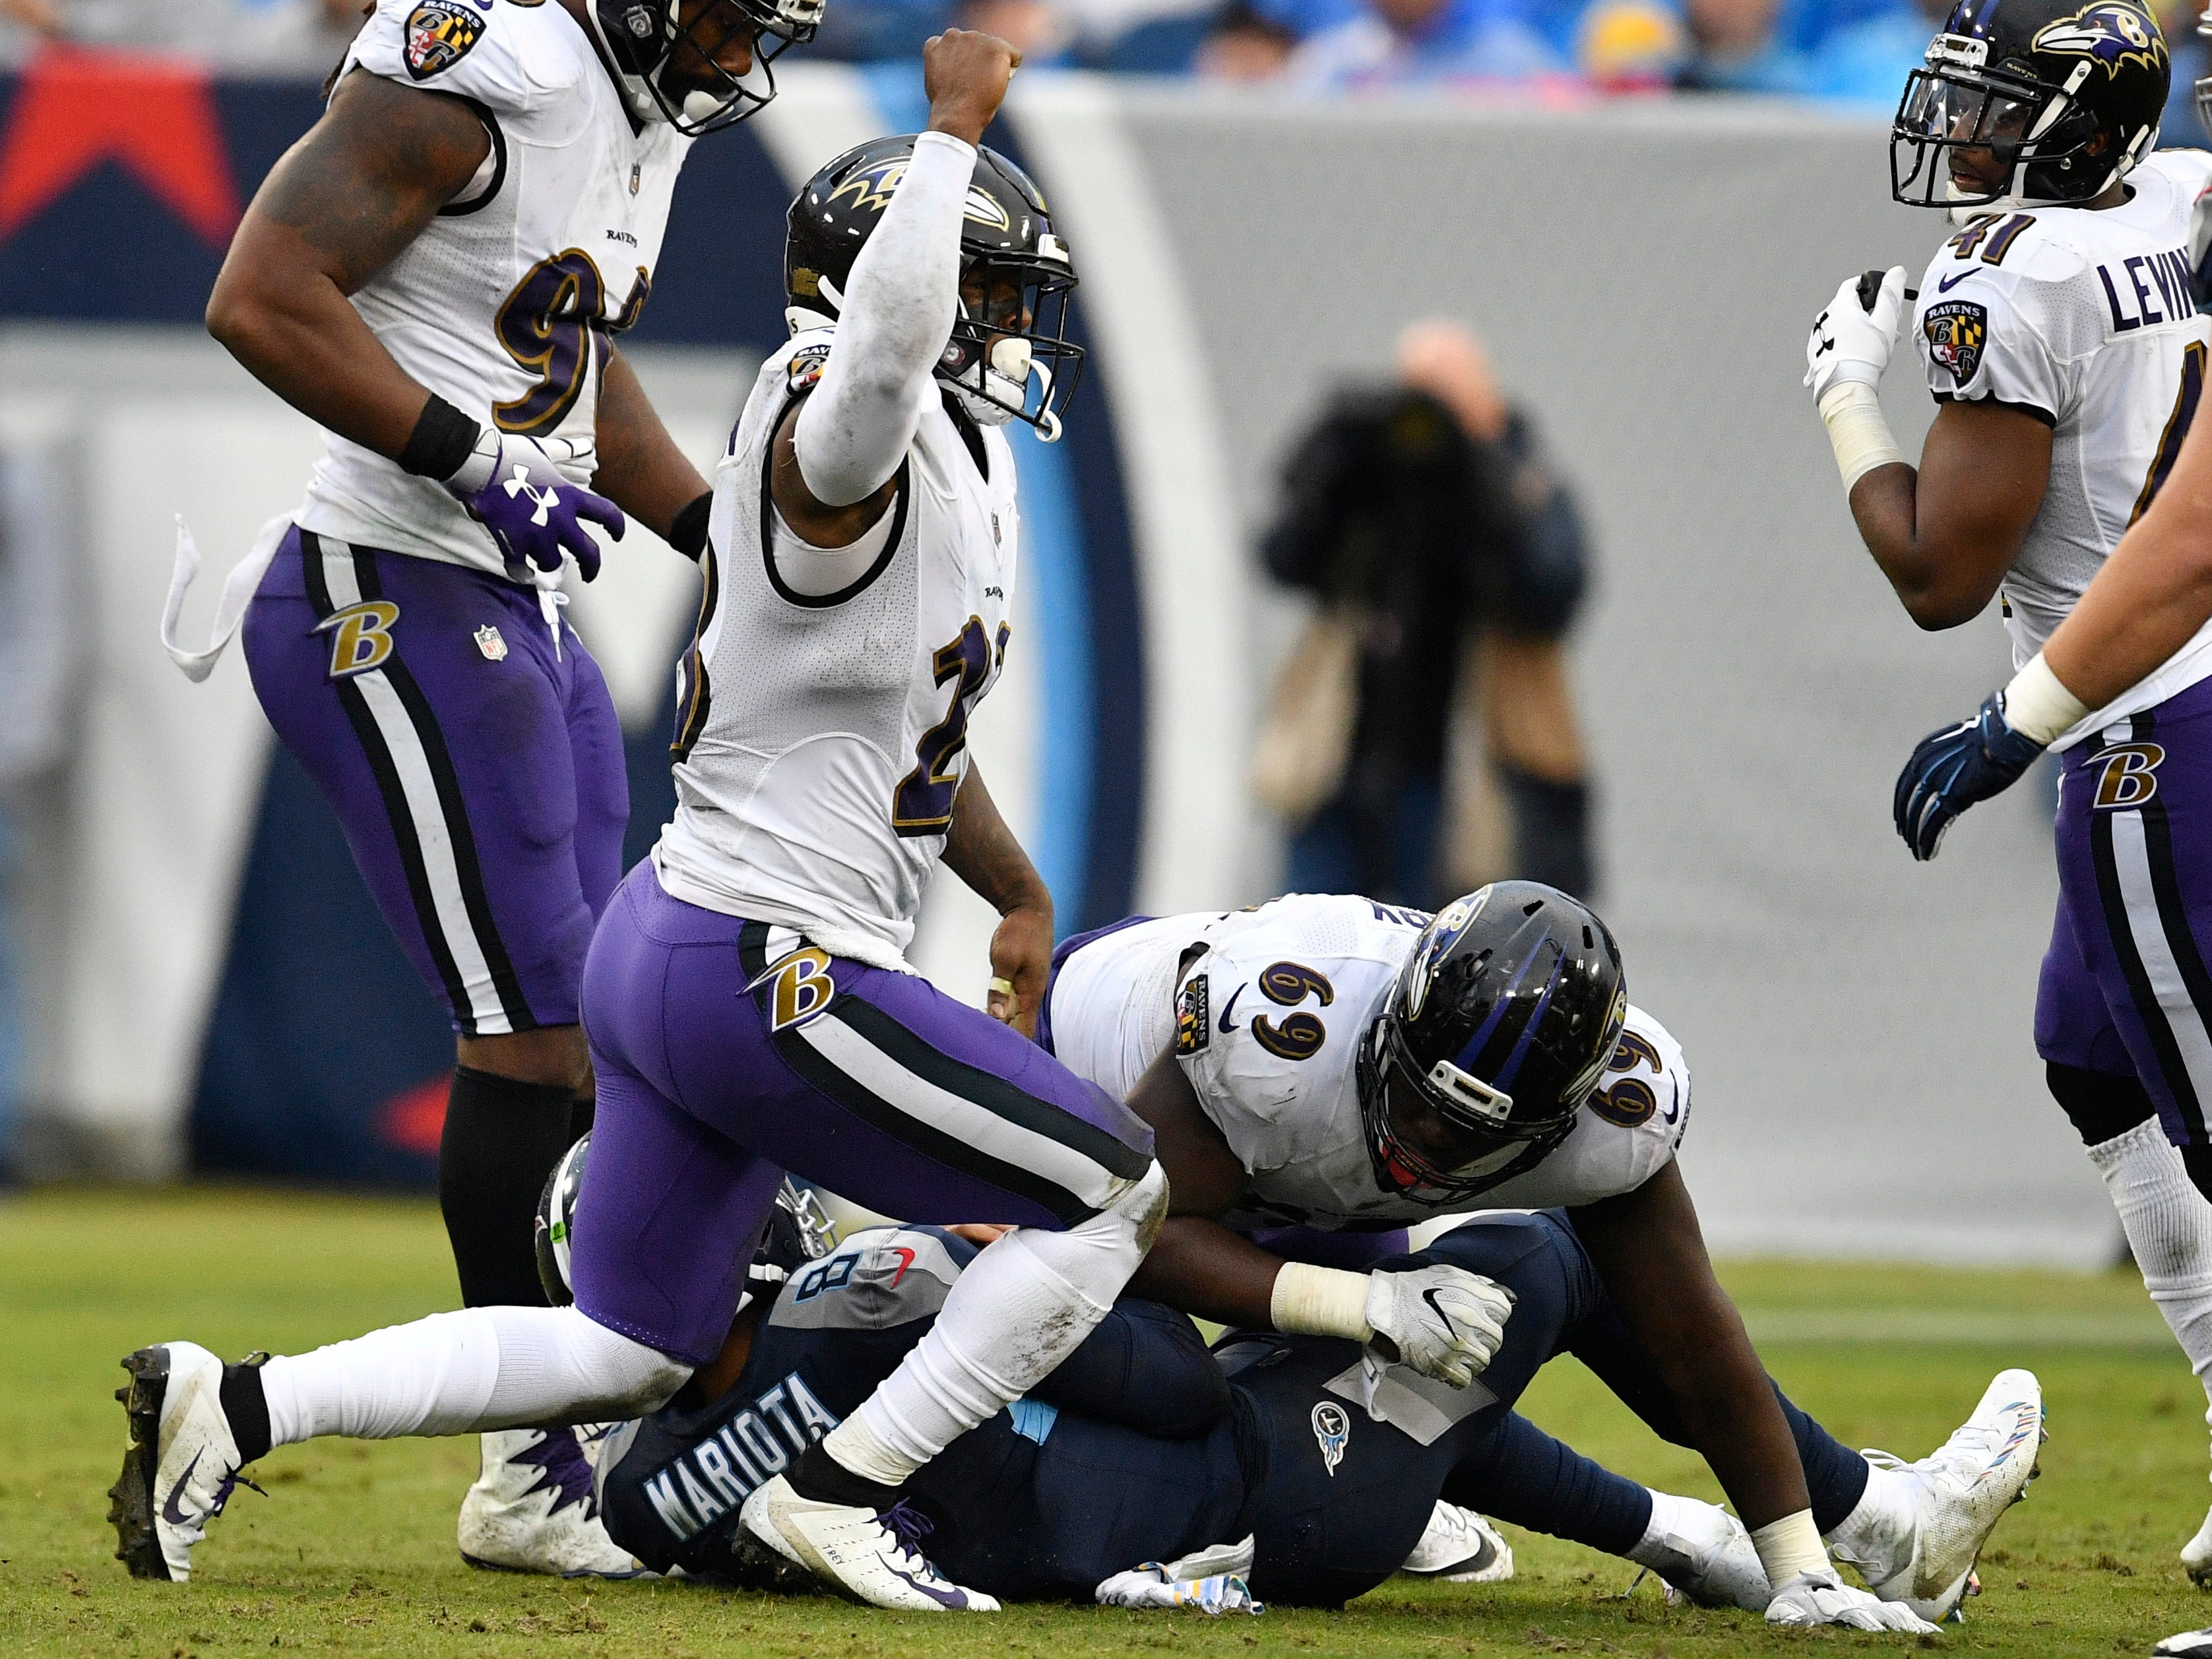 Ravens strong safety Tony Jefferson (23) celebrates taking down Titans quarterback Marcus Mariota (8) with Ravens defensive tackle Willie Henry (69) in the third quarter at Nissan Stadium Sunday, Oct. 14, 2018, in Nashville, Tenn.